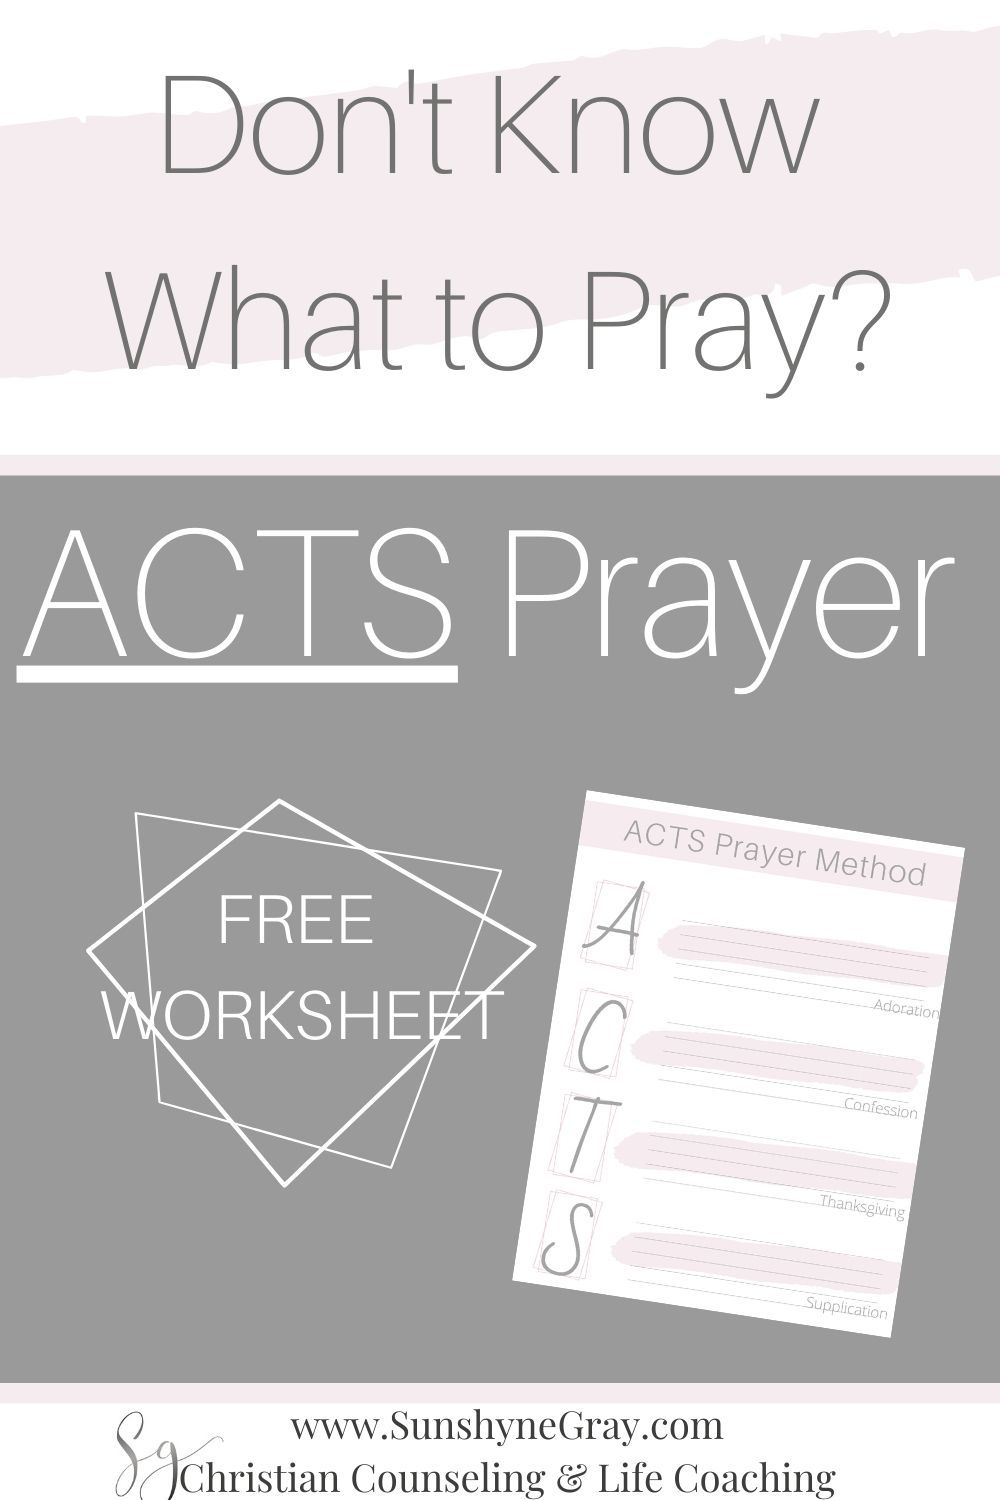 ACTS Prayer Method & Worksheet Christian Counseling in